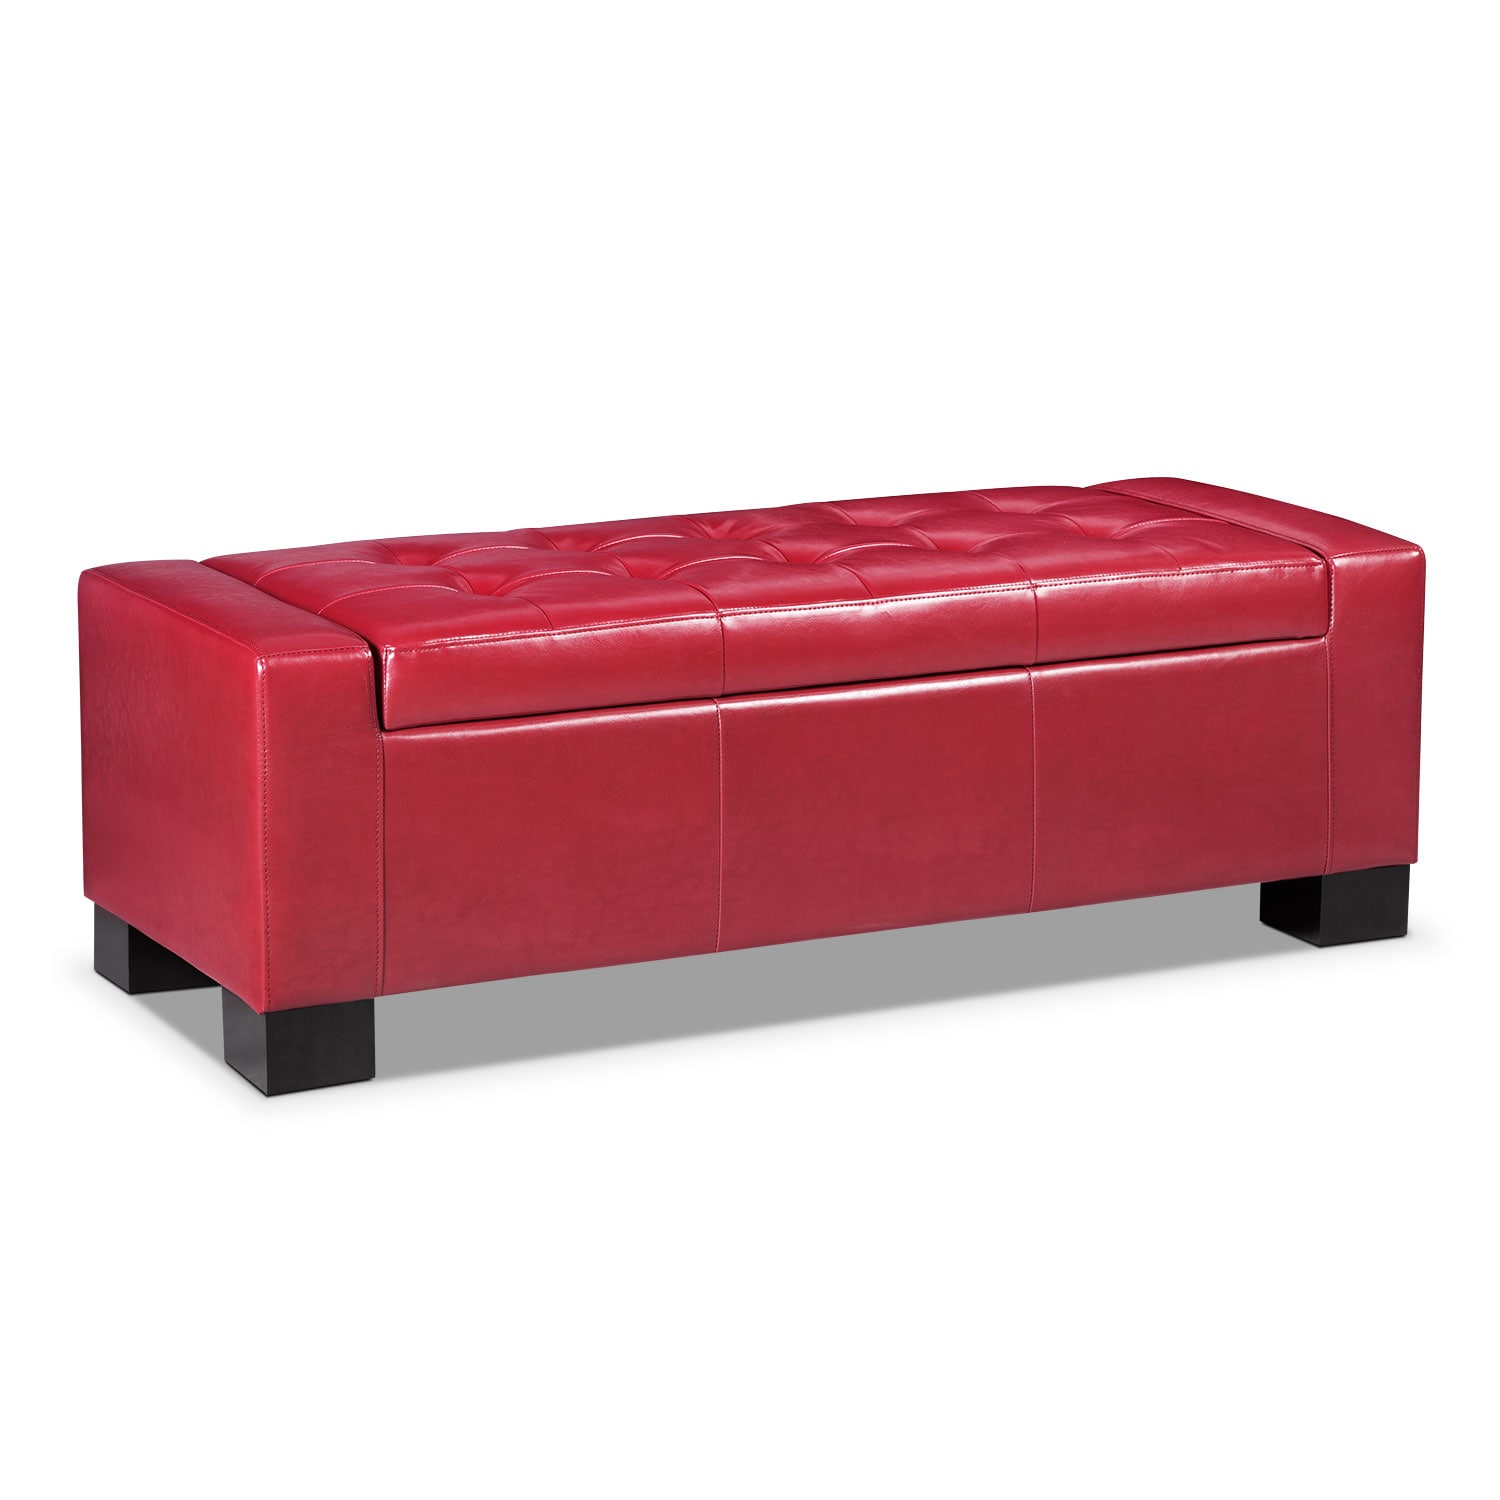 Living Room Furniture - Jive Storage Ottoman - Red